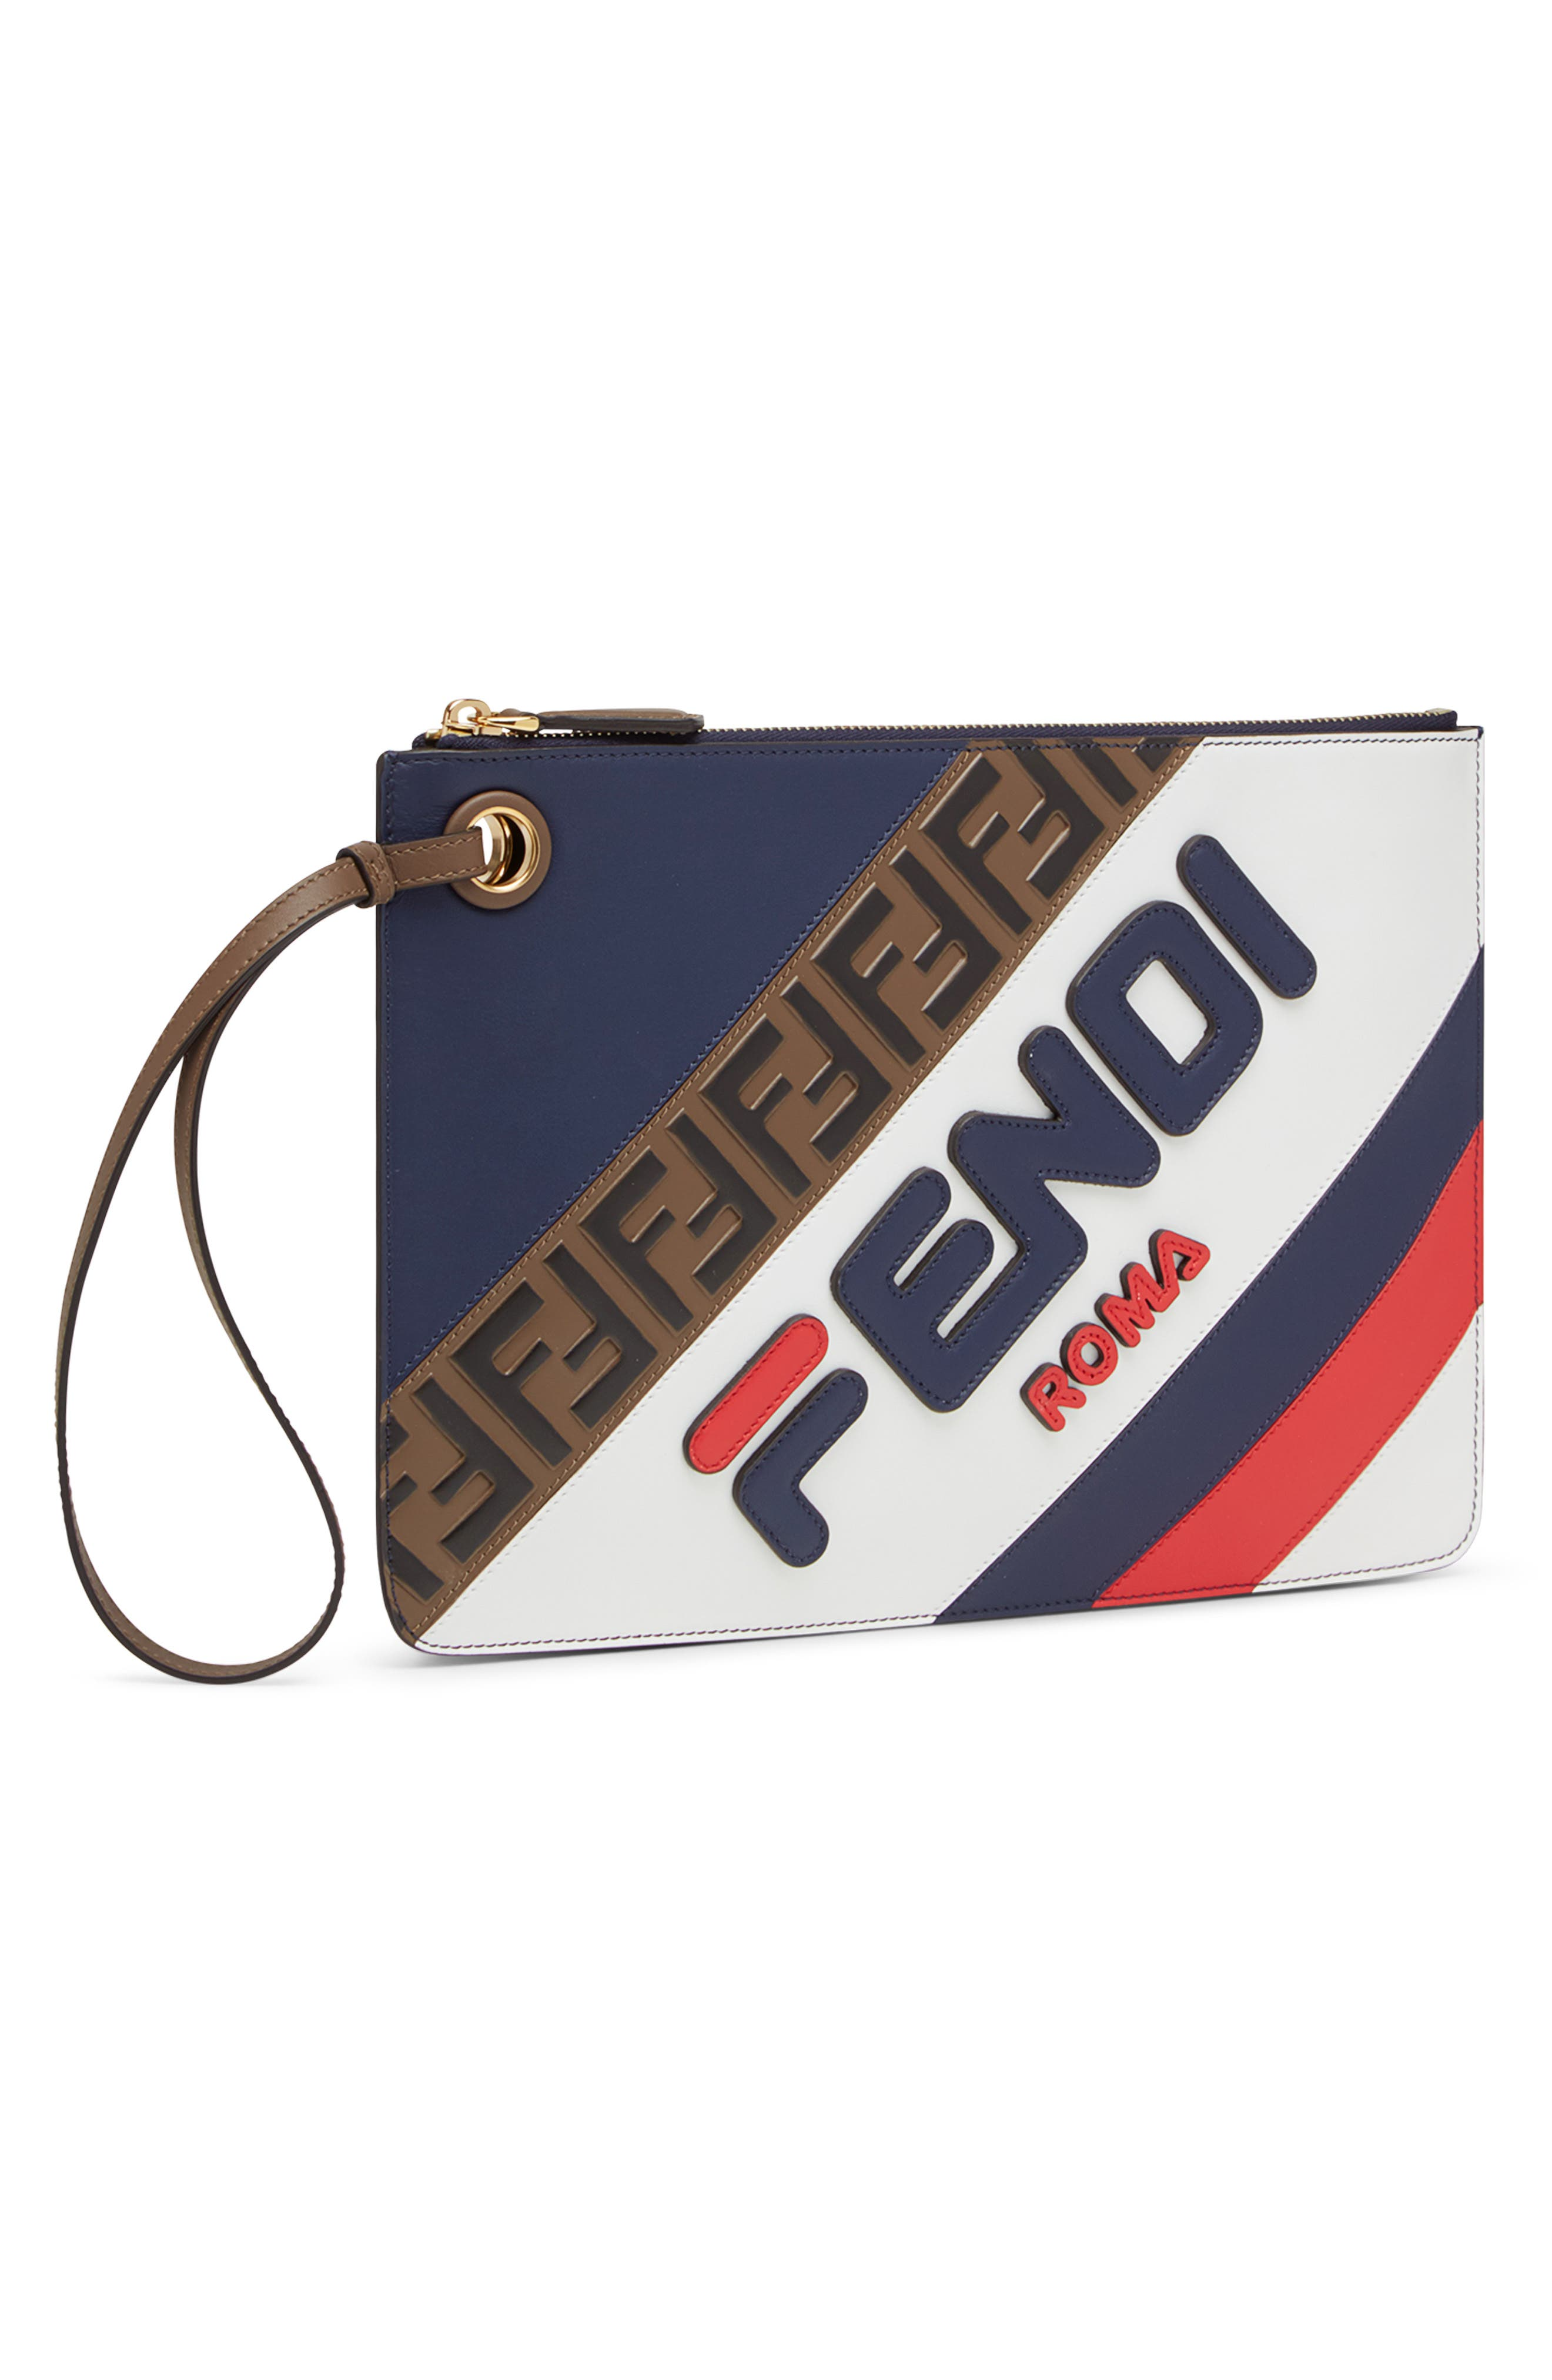 FENDI, x FILA Medium Mania Logo Leather Clutch, Alternate thumbnail 4, color, BLUE/ BERRY MULTI